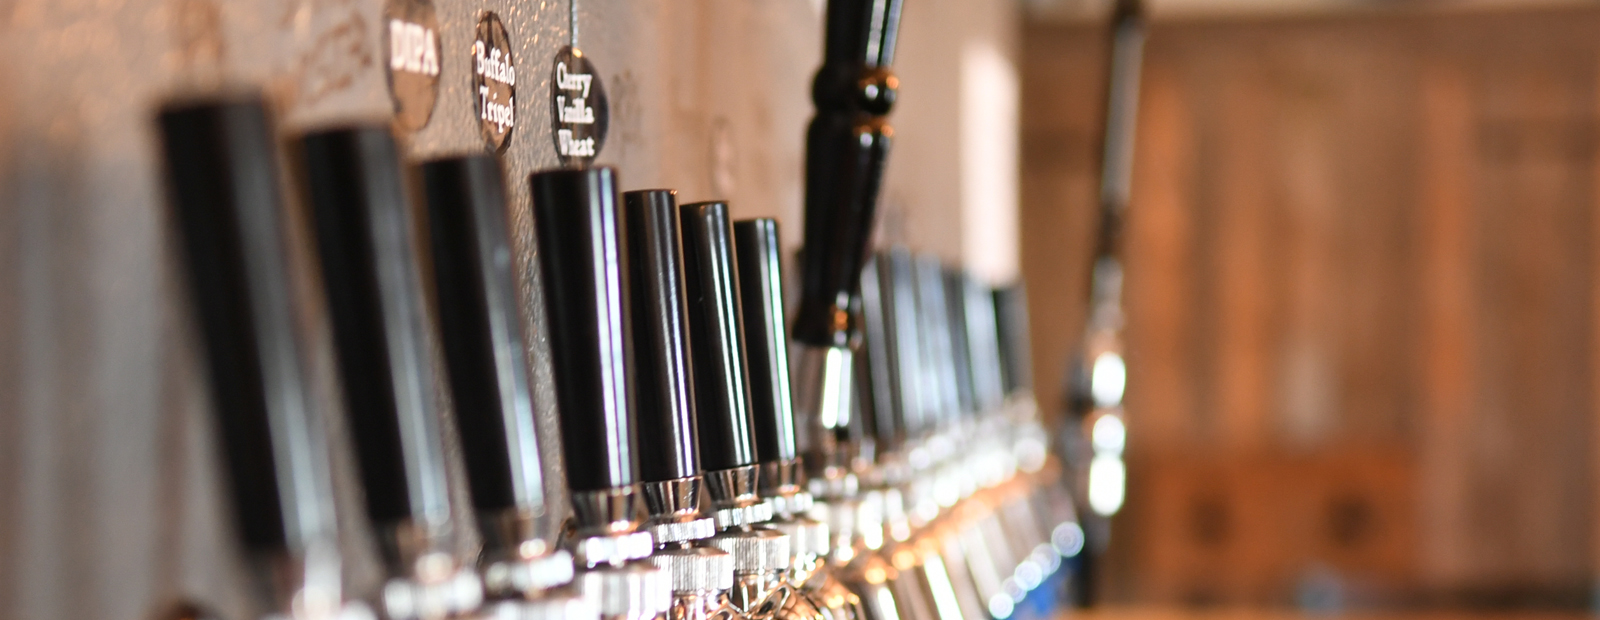 Taps at the ready at 12 Gates Brewing Company